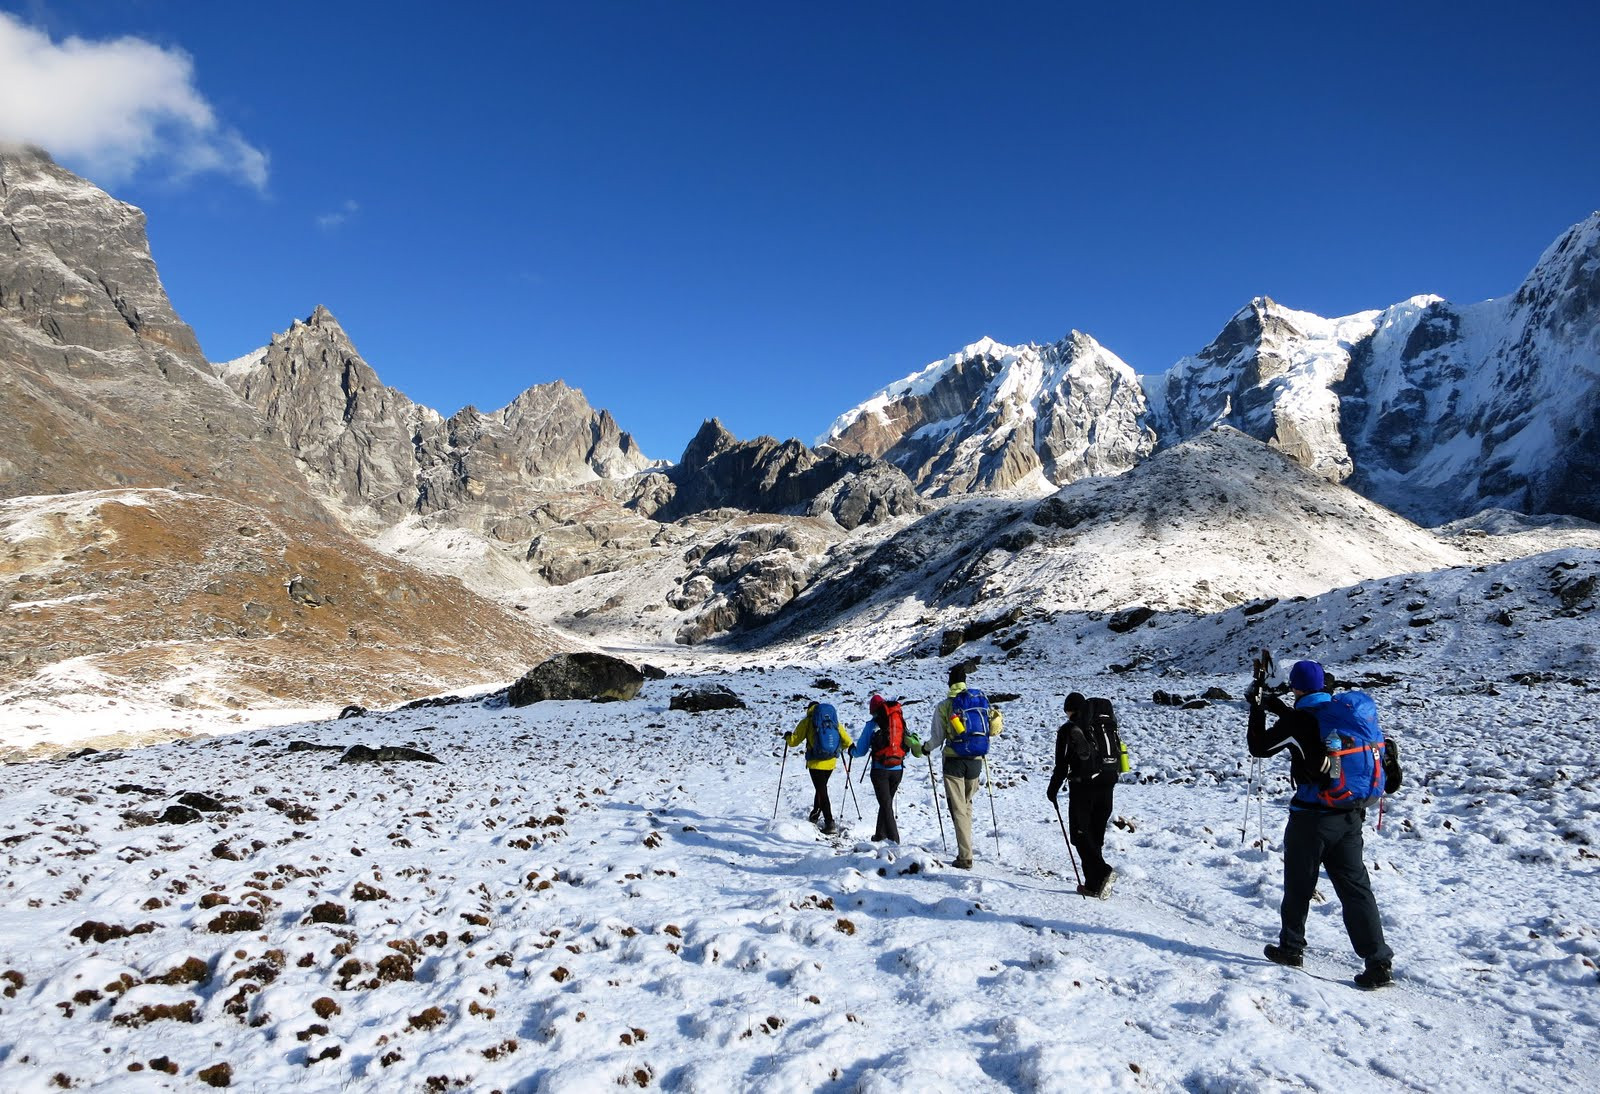 Everest base camp trek is the adventure of a lifetime, a journey for those whose have a dream of Mt Everest.